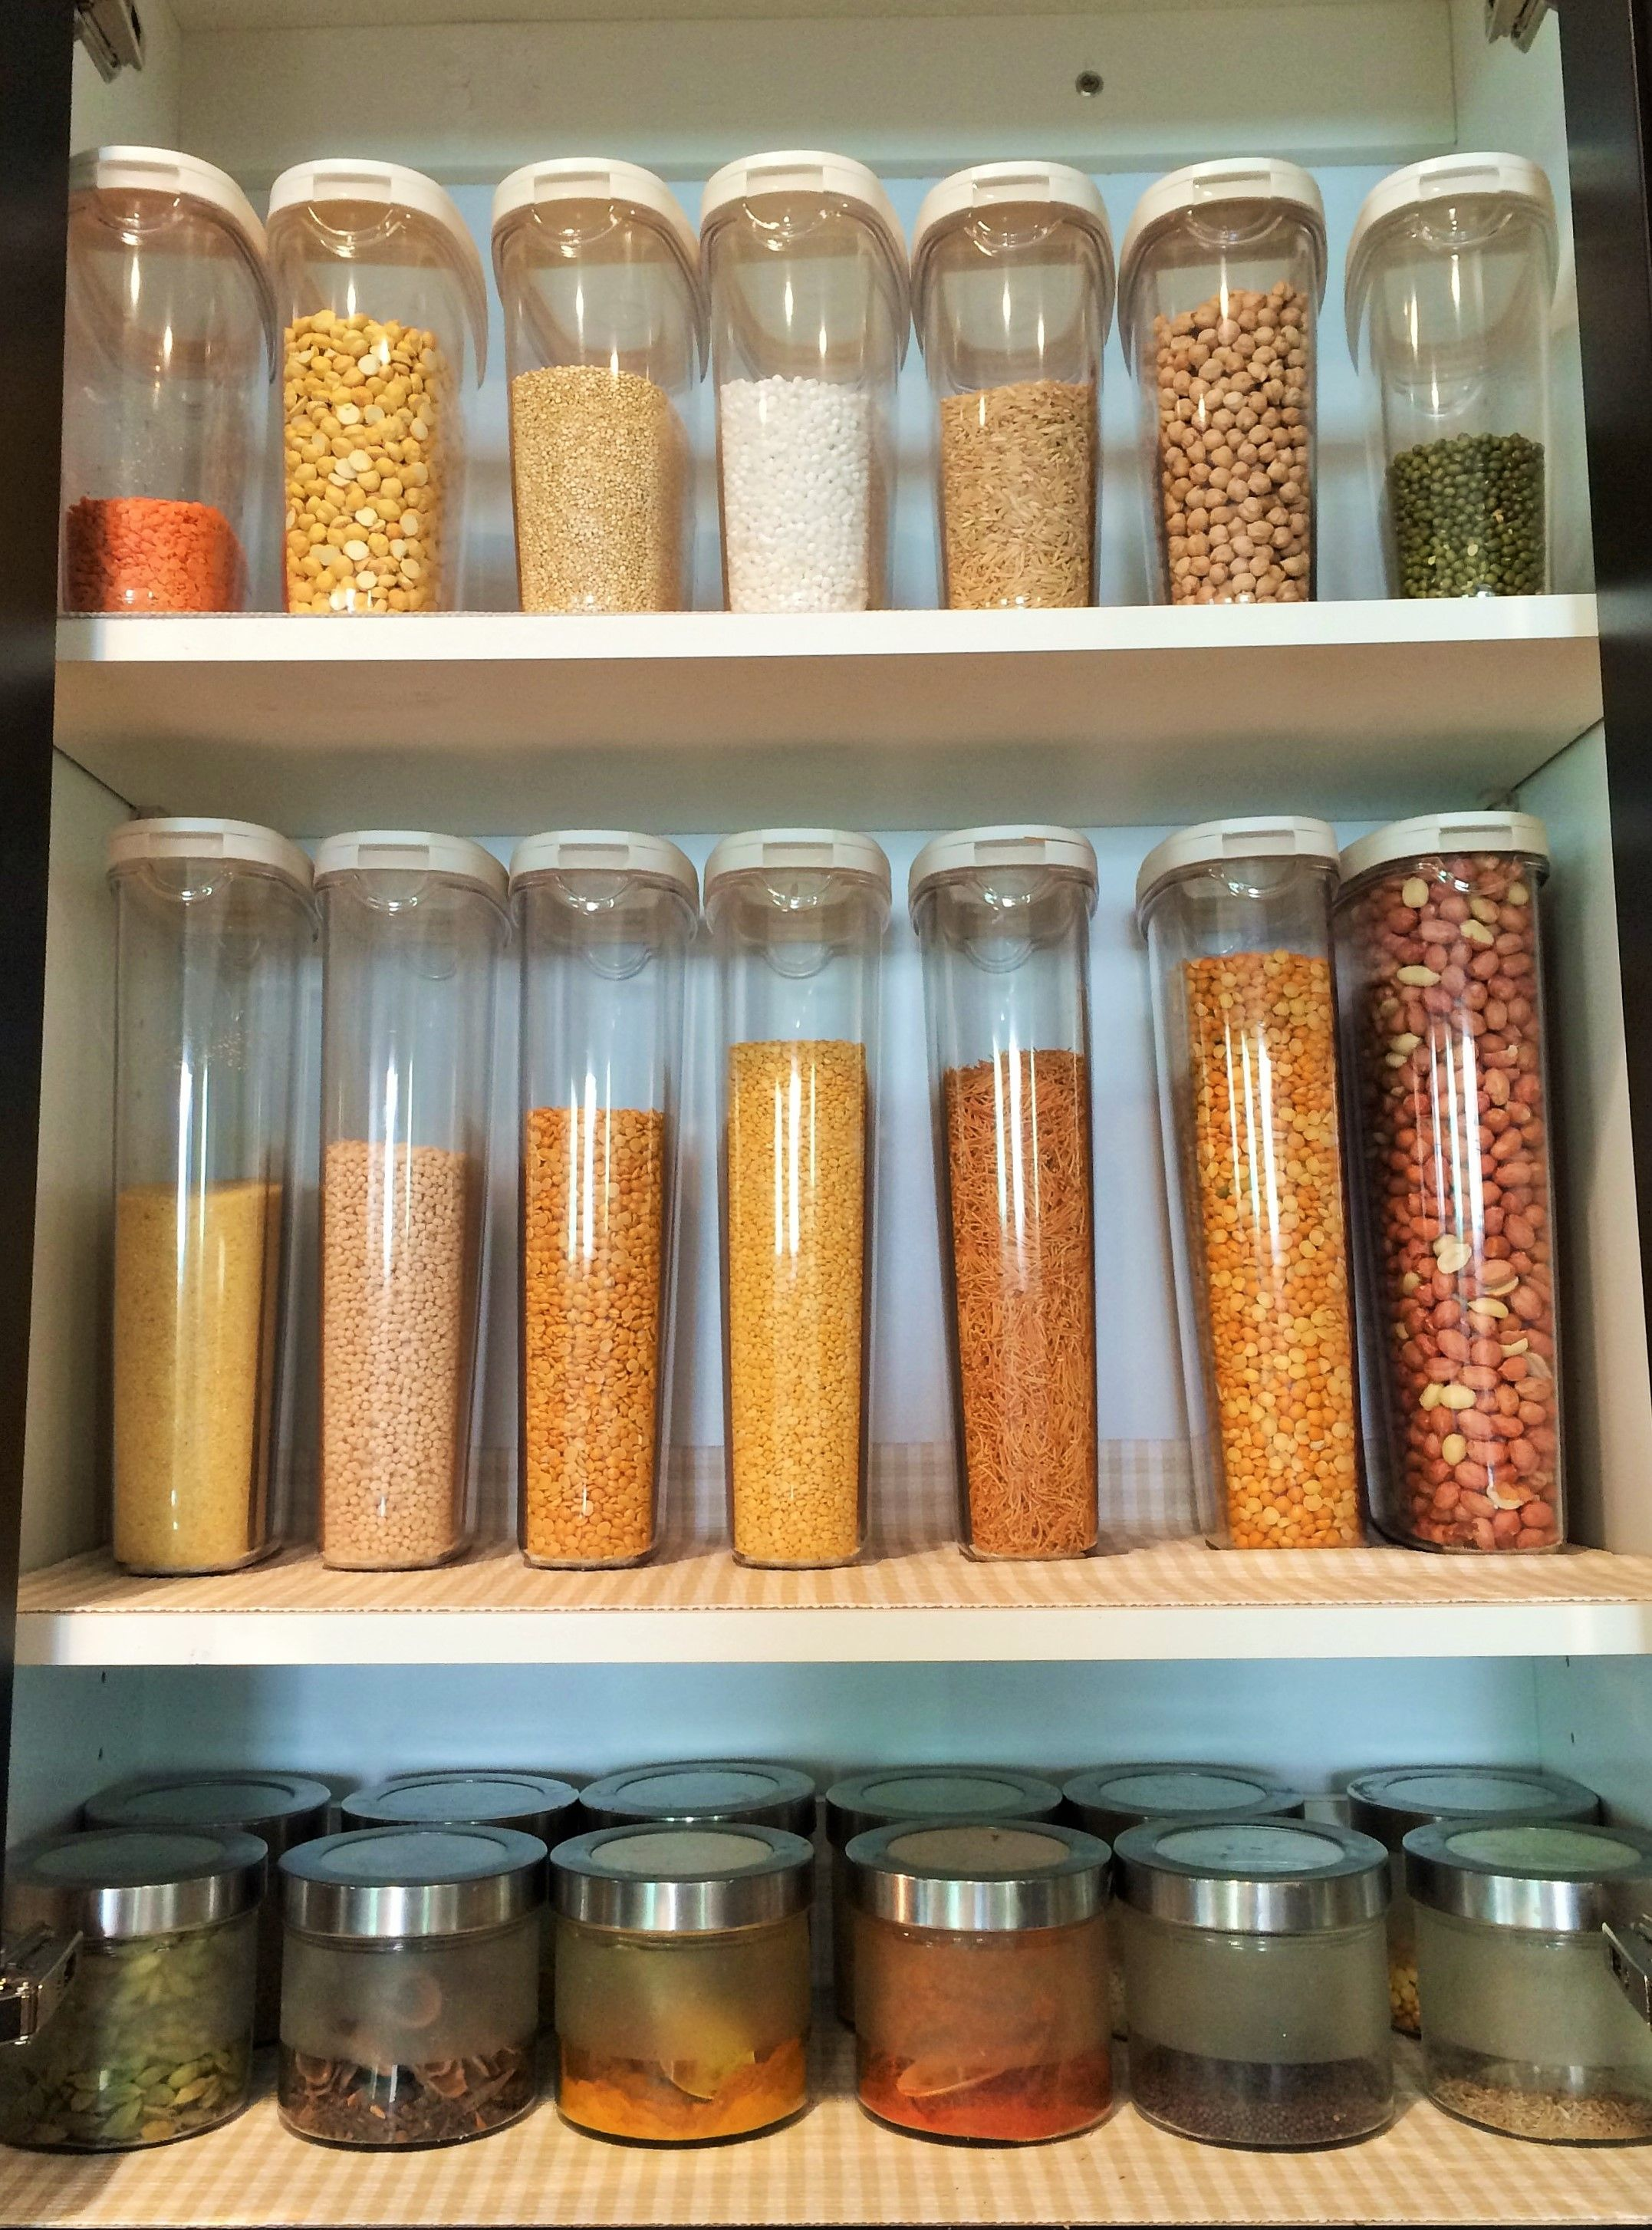 Organize Your Pulses Beans And Spices Using Ikea Containers Ikea Kitchen Storage Kitchen Storage Boxes Ikea Kitchen